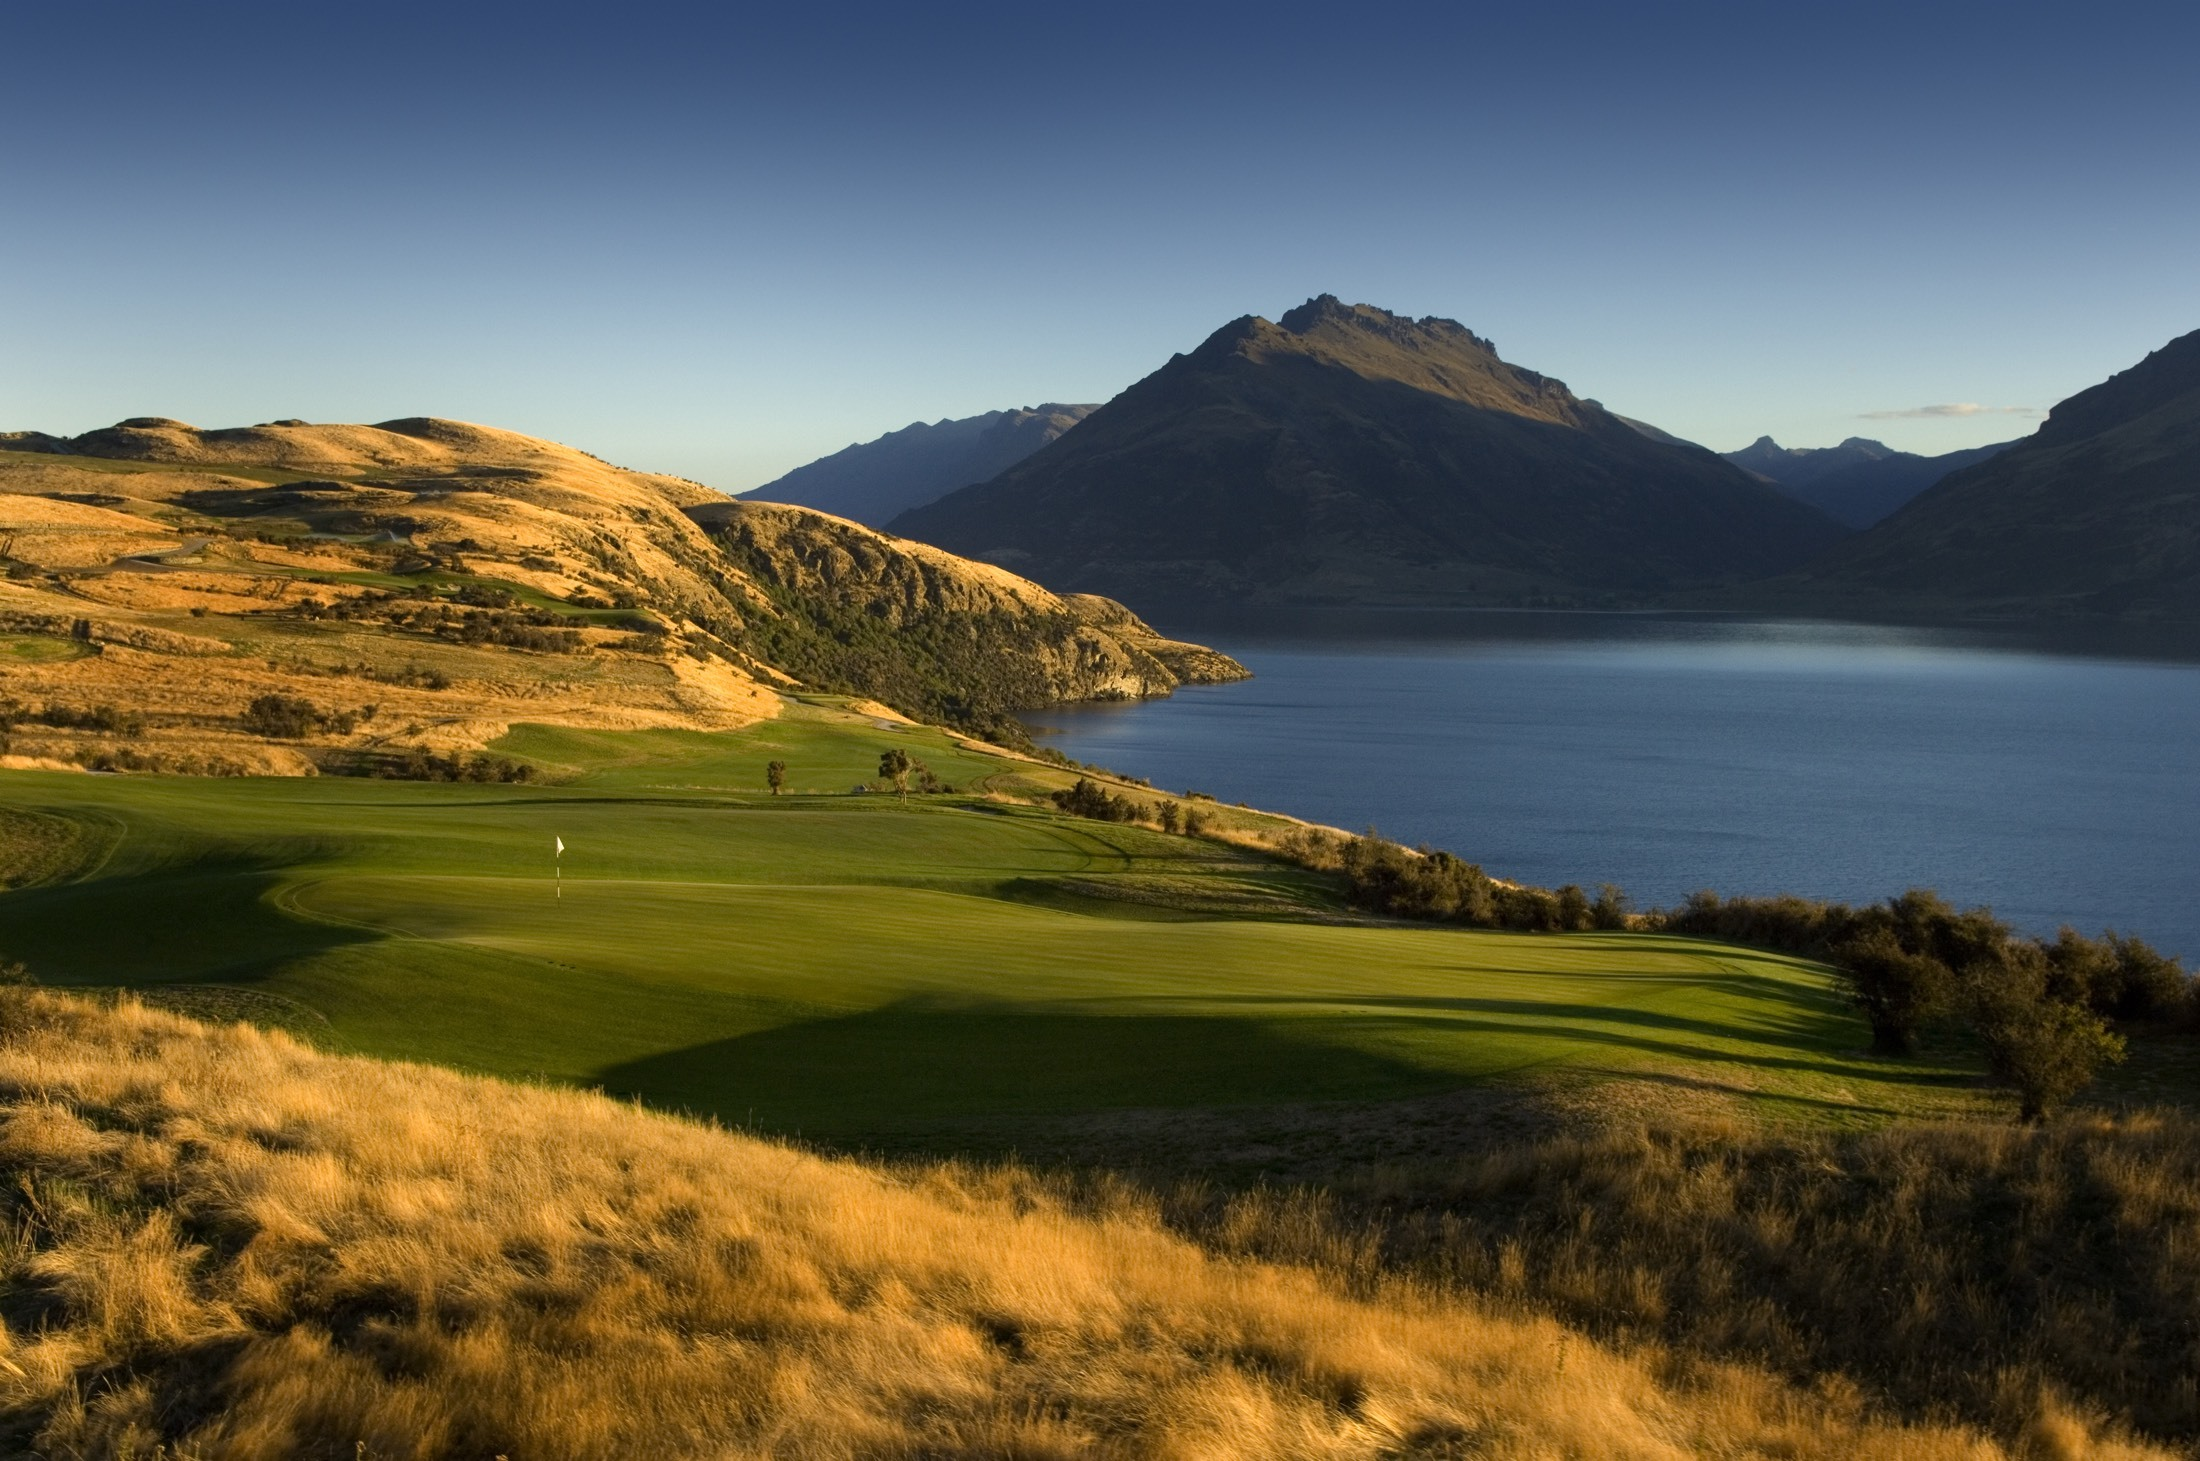 Jack's Point: A Hidden Gem of Queenstown